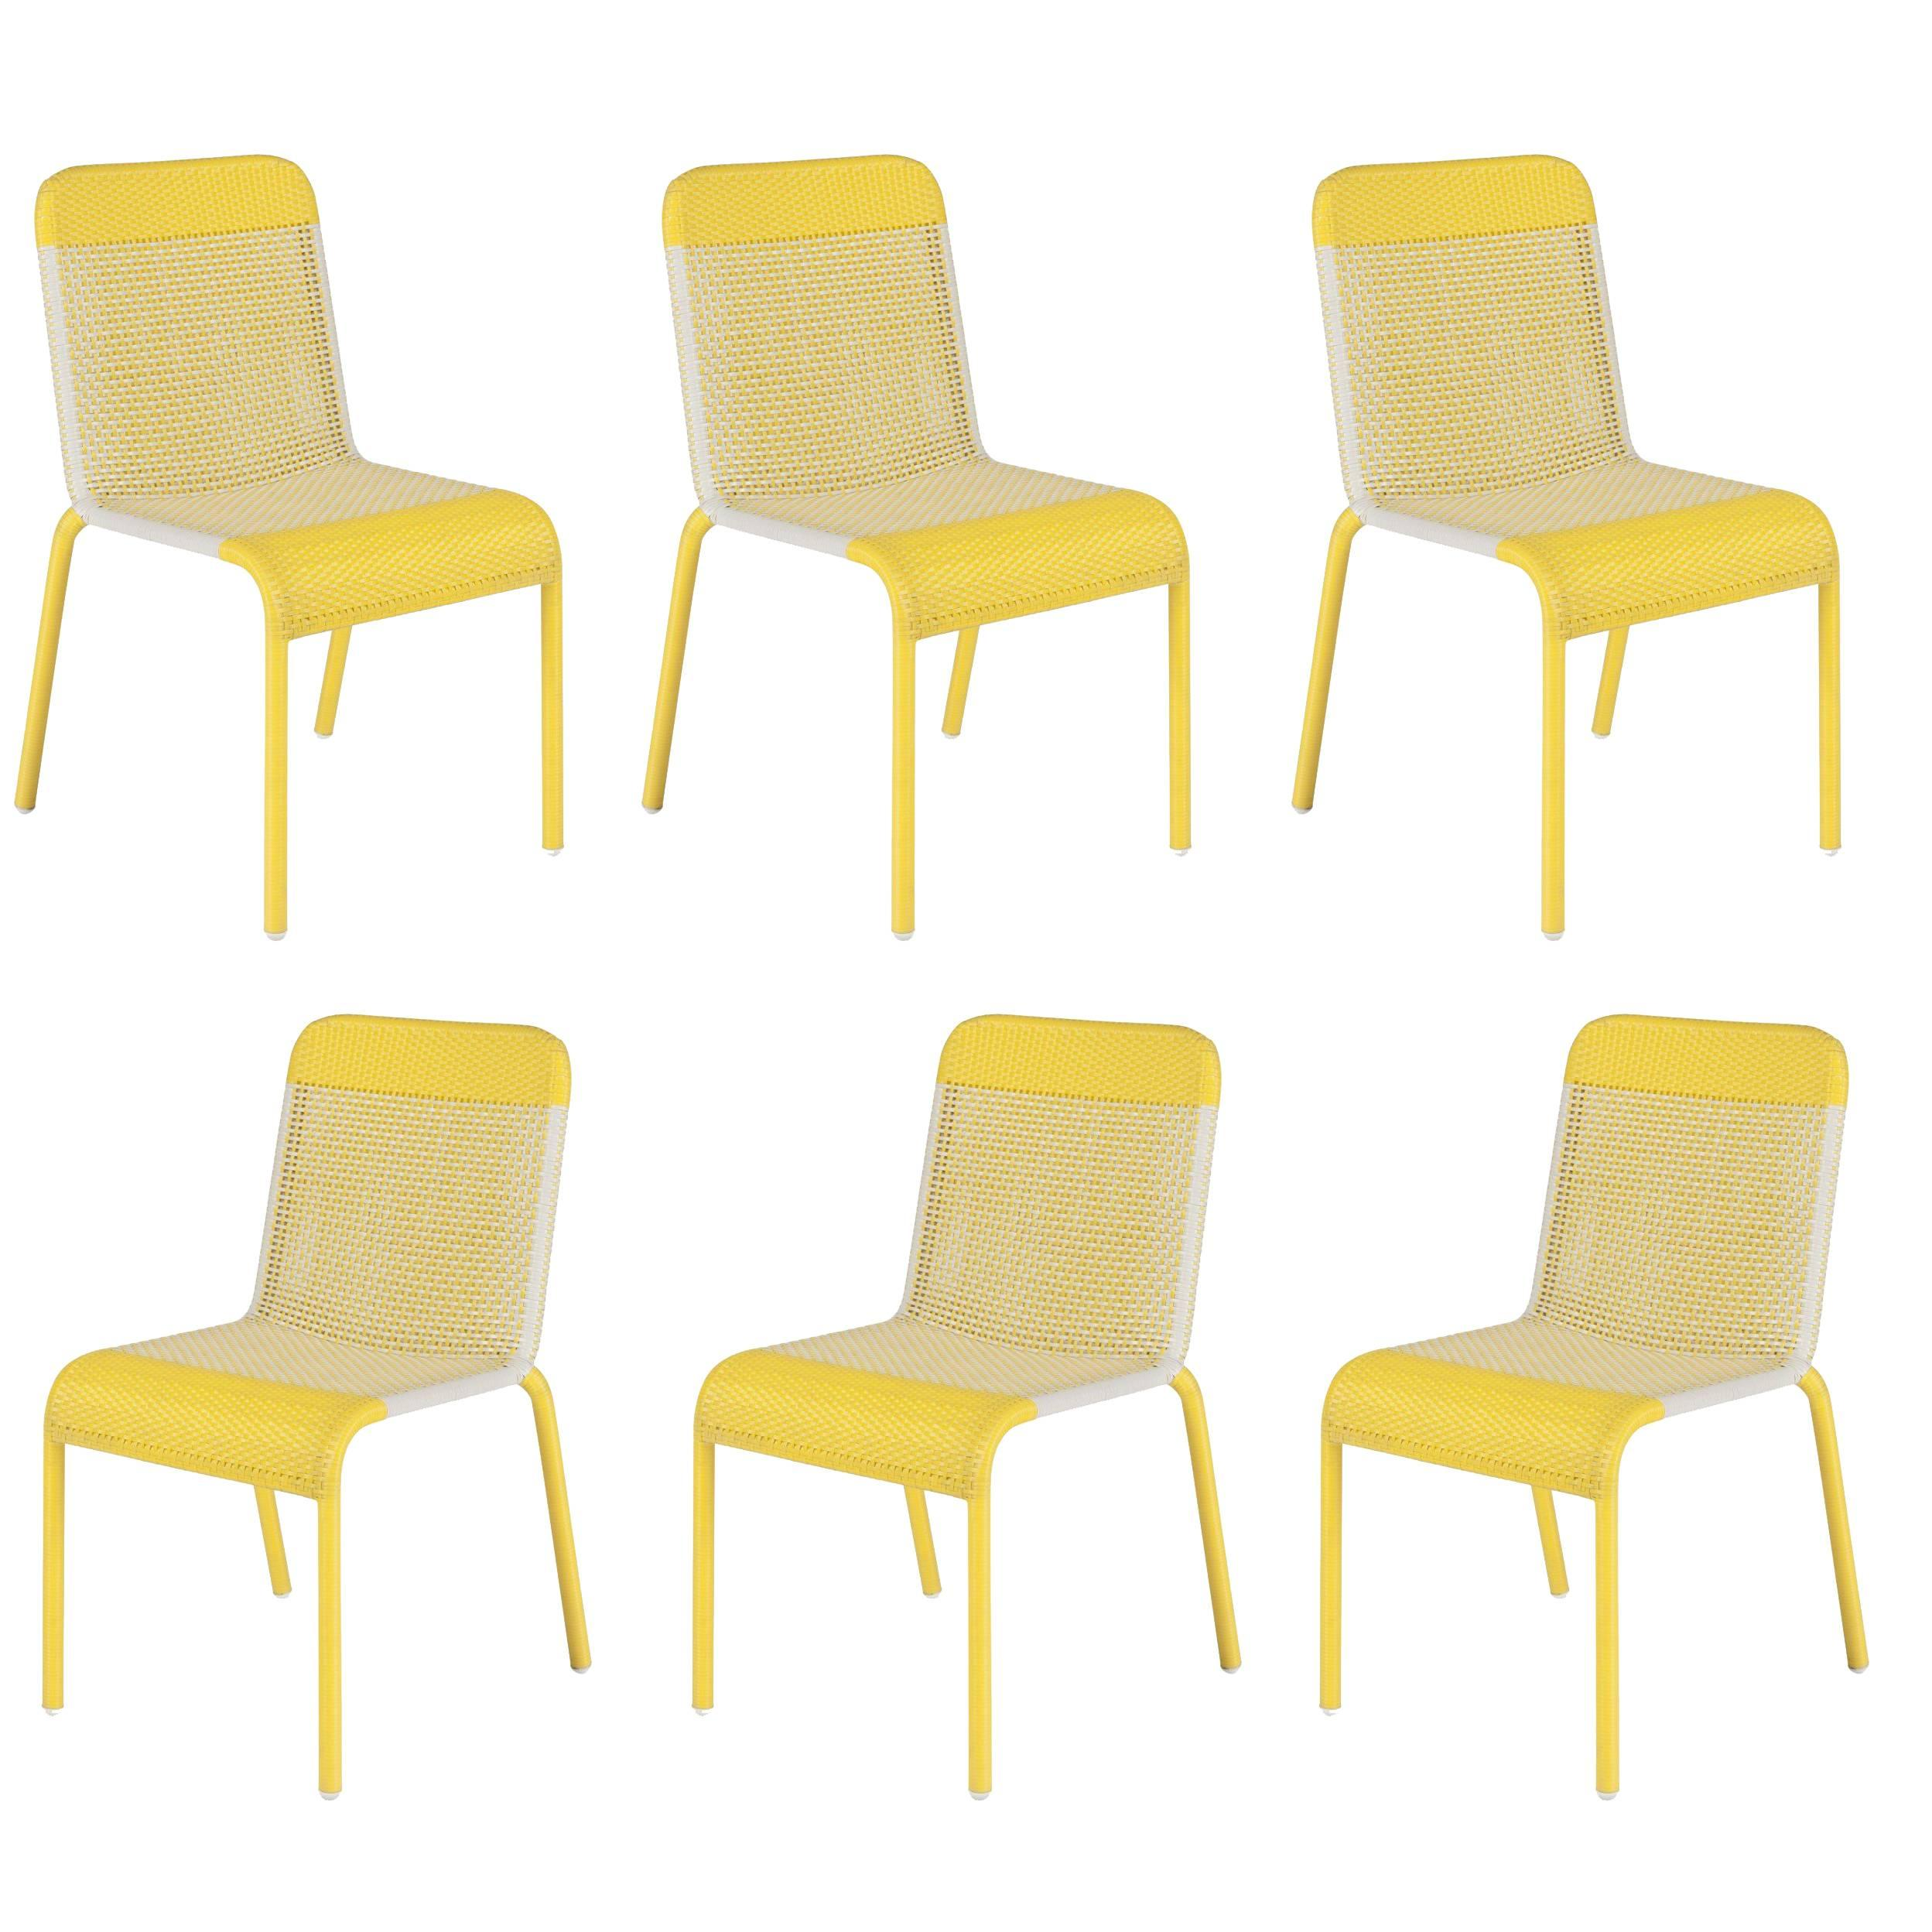 Resin Chairs Set Of Six Yellow Resin Stackable Chairs